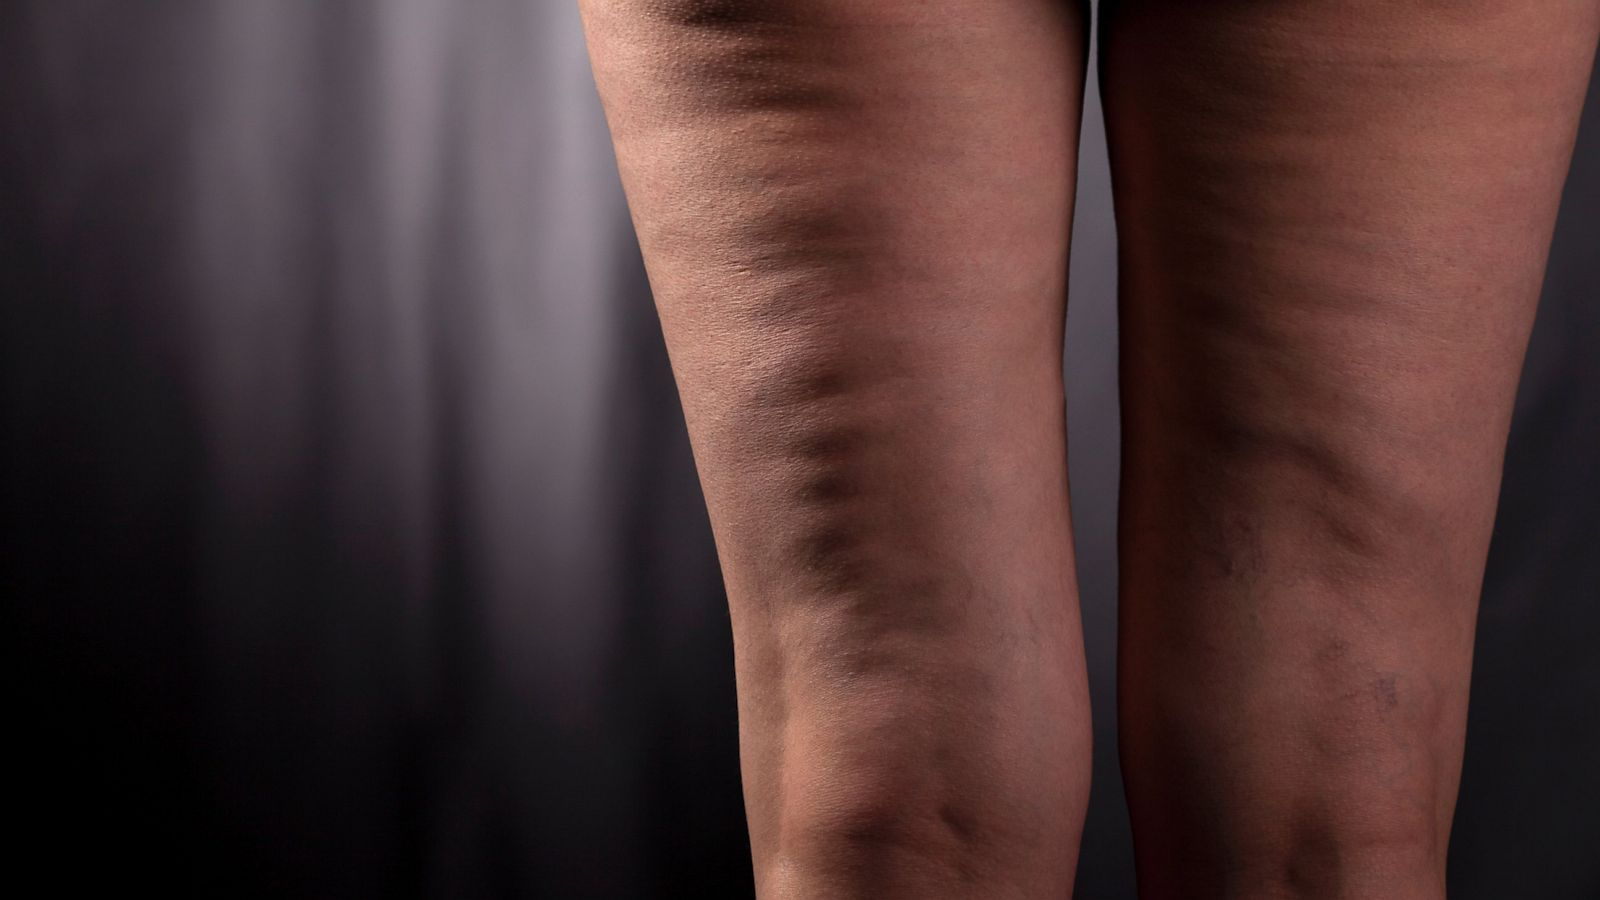 Cellulite its Effect On Your Personality